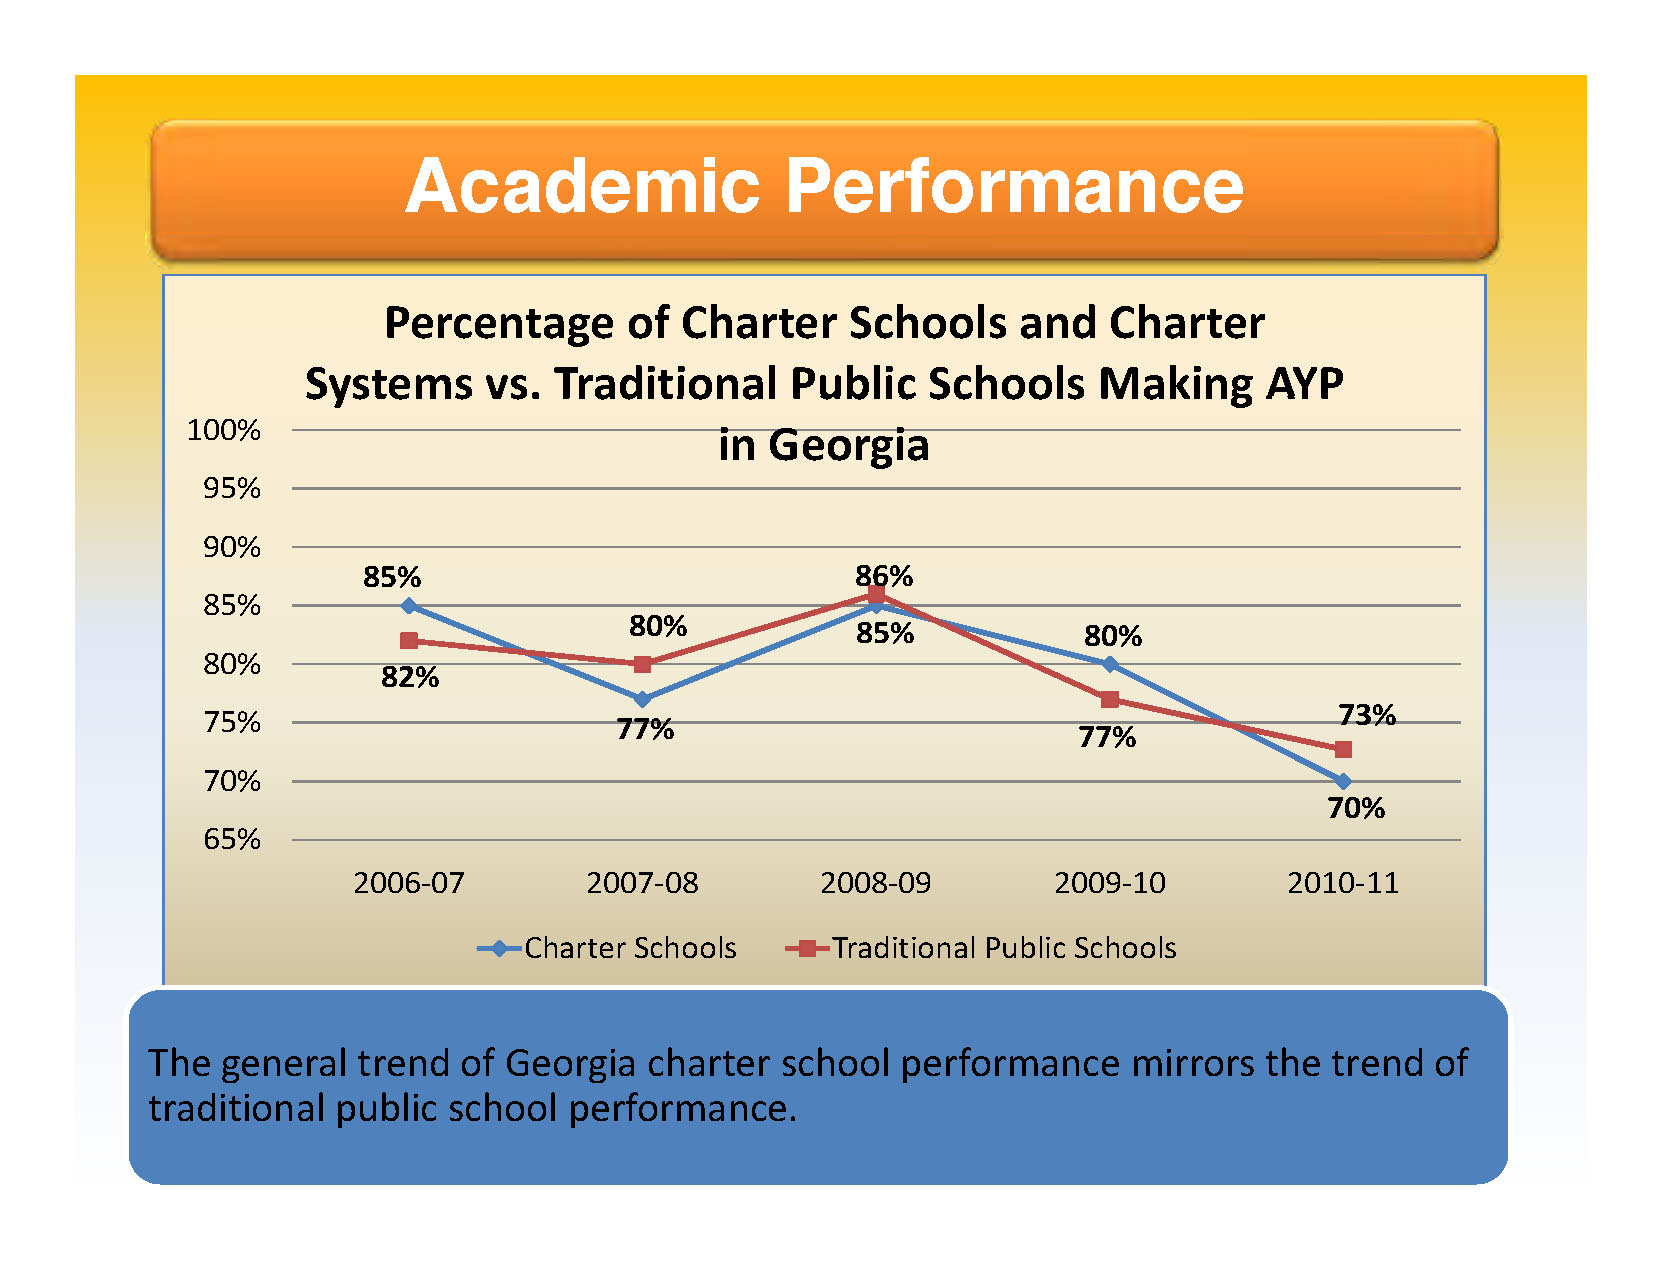 Traditional public schools are out performing charter schools on AYP measures.